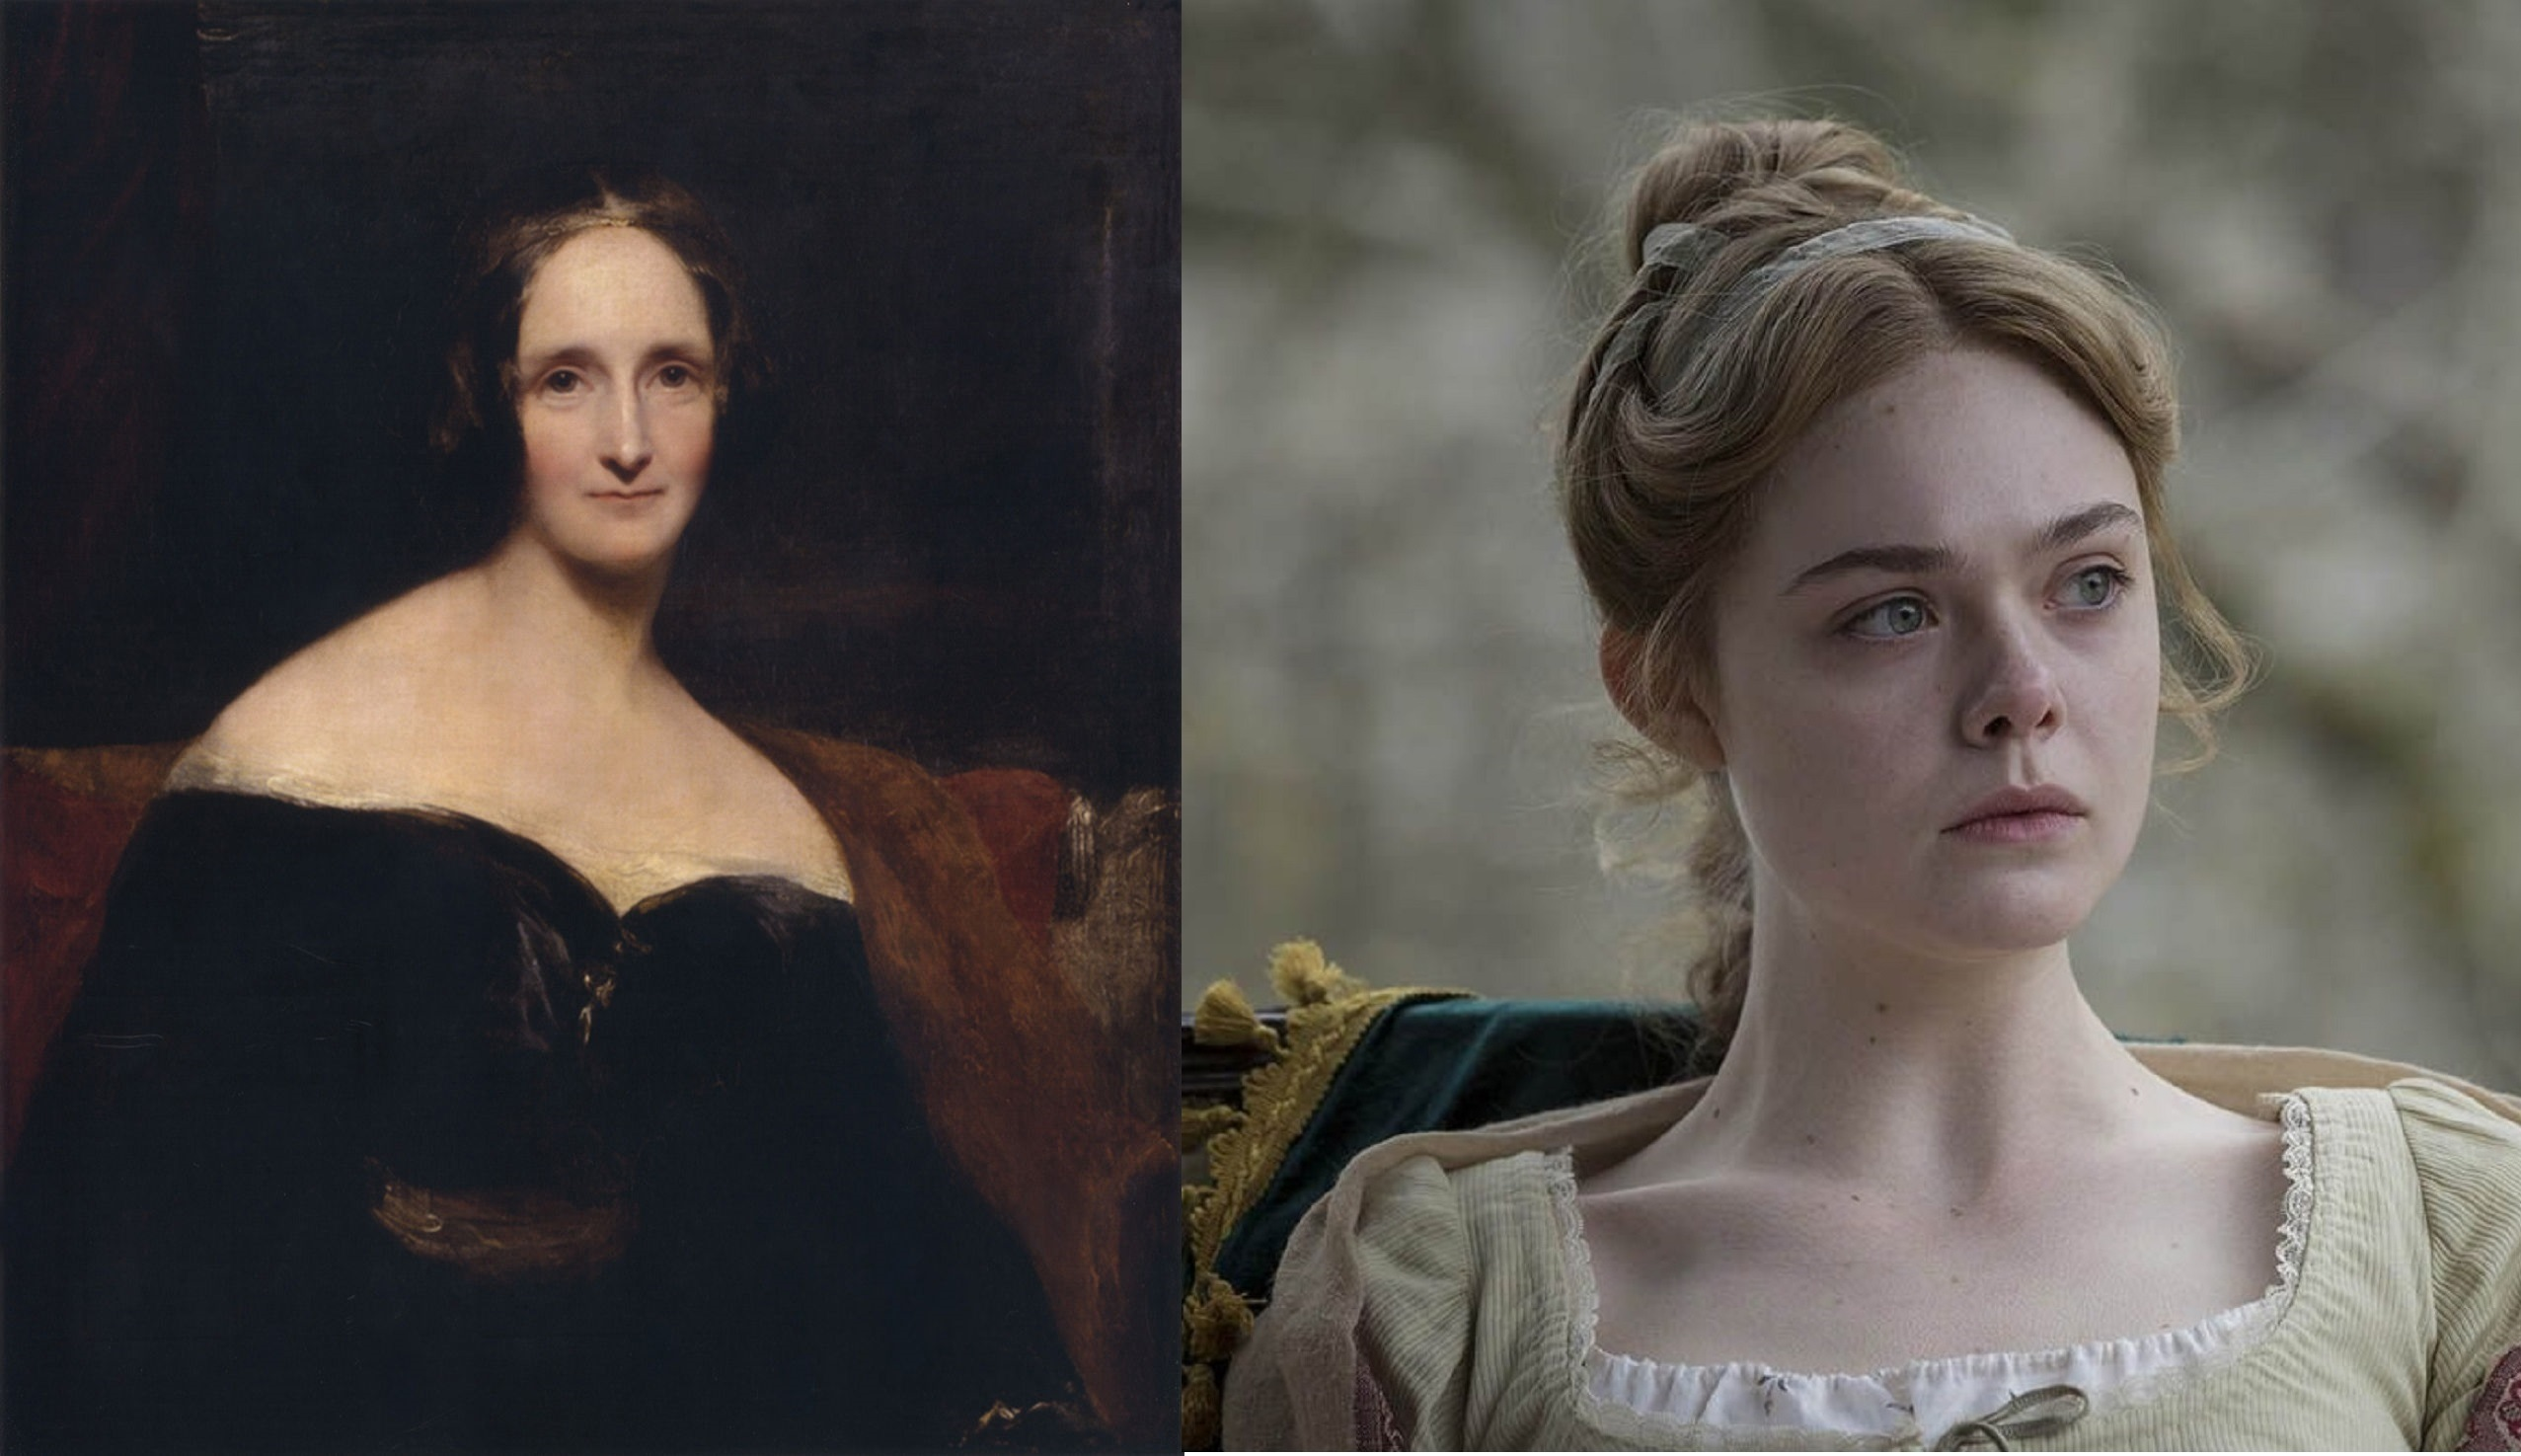 Portrait of Mary Shelley vs Elle Fanning playing Mary Shelley in the film